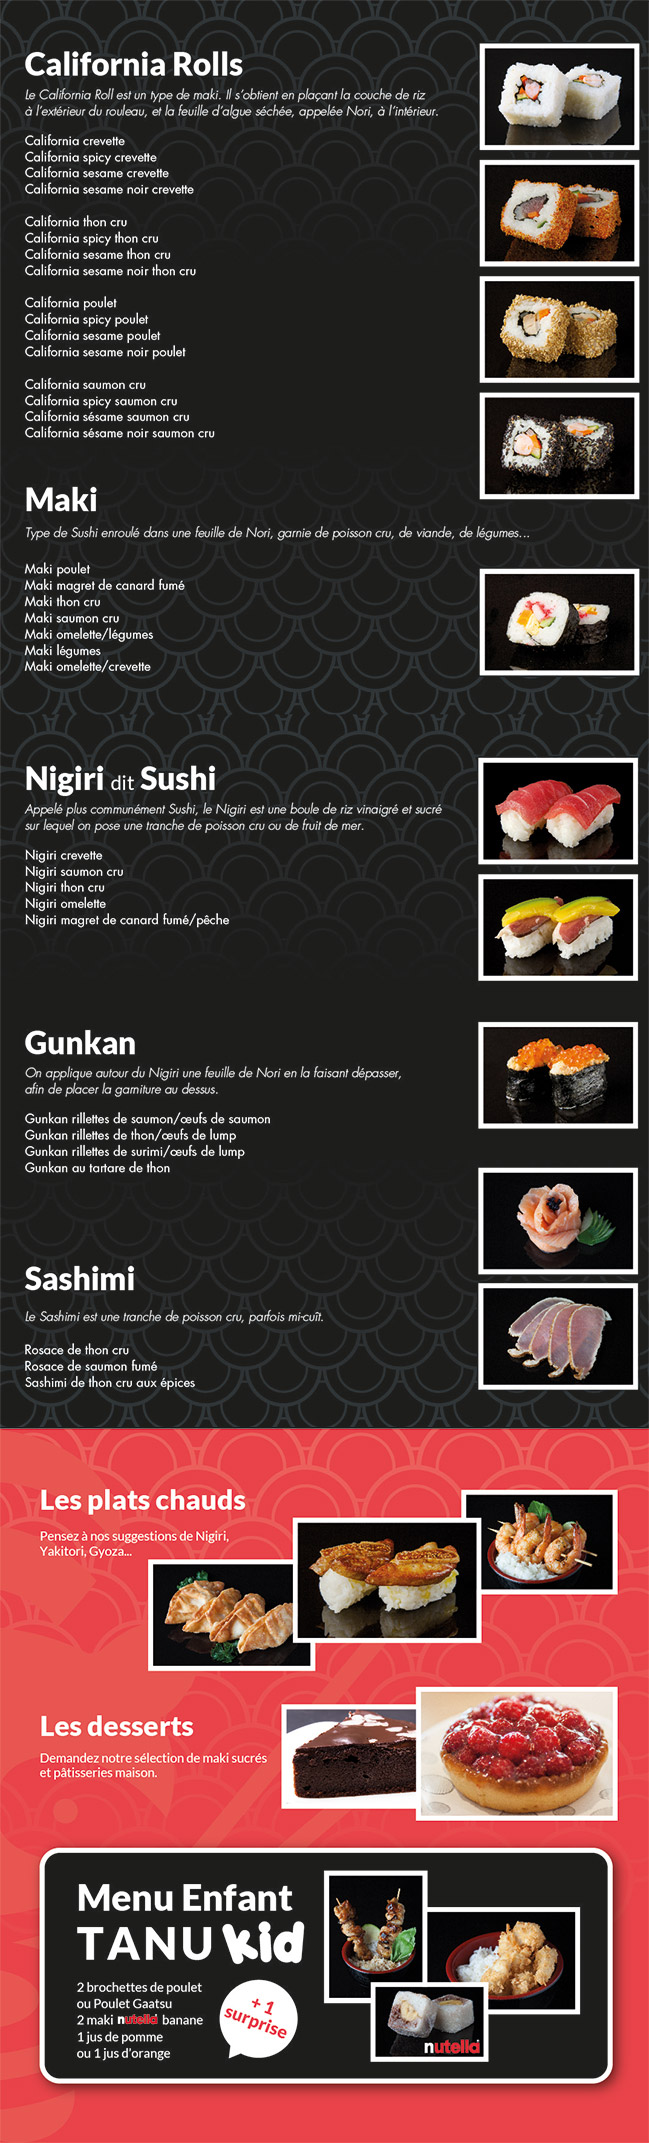 Photo du restaurant Tanuki Sushi Train à noumea, Nouvelle-Calédonie